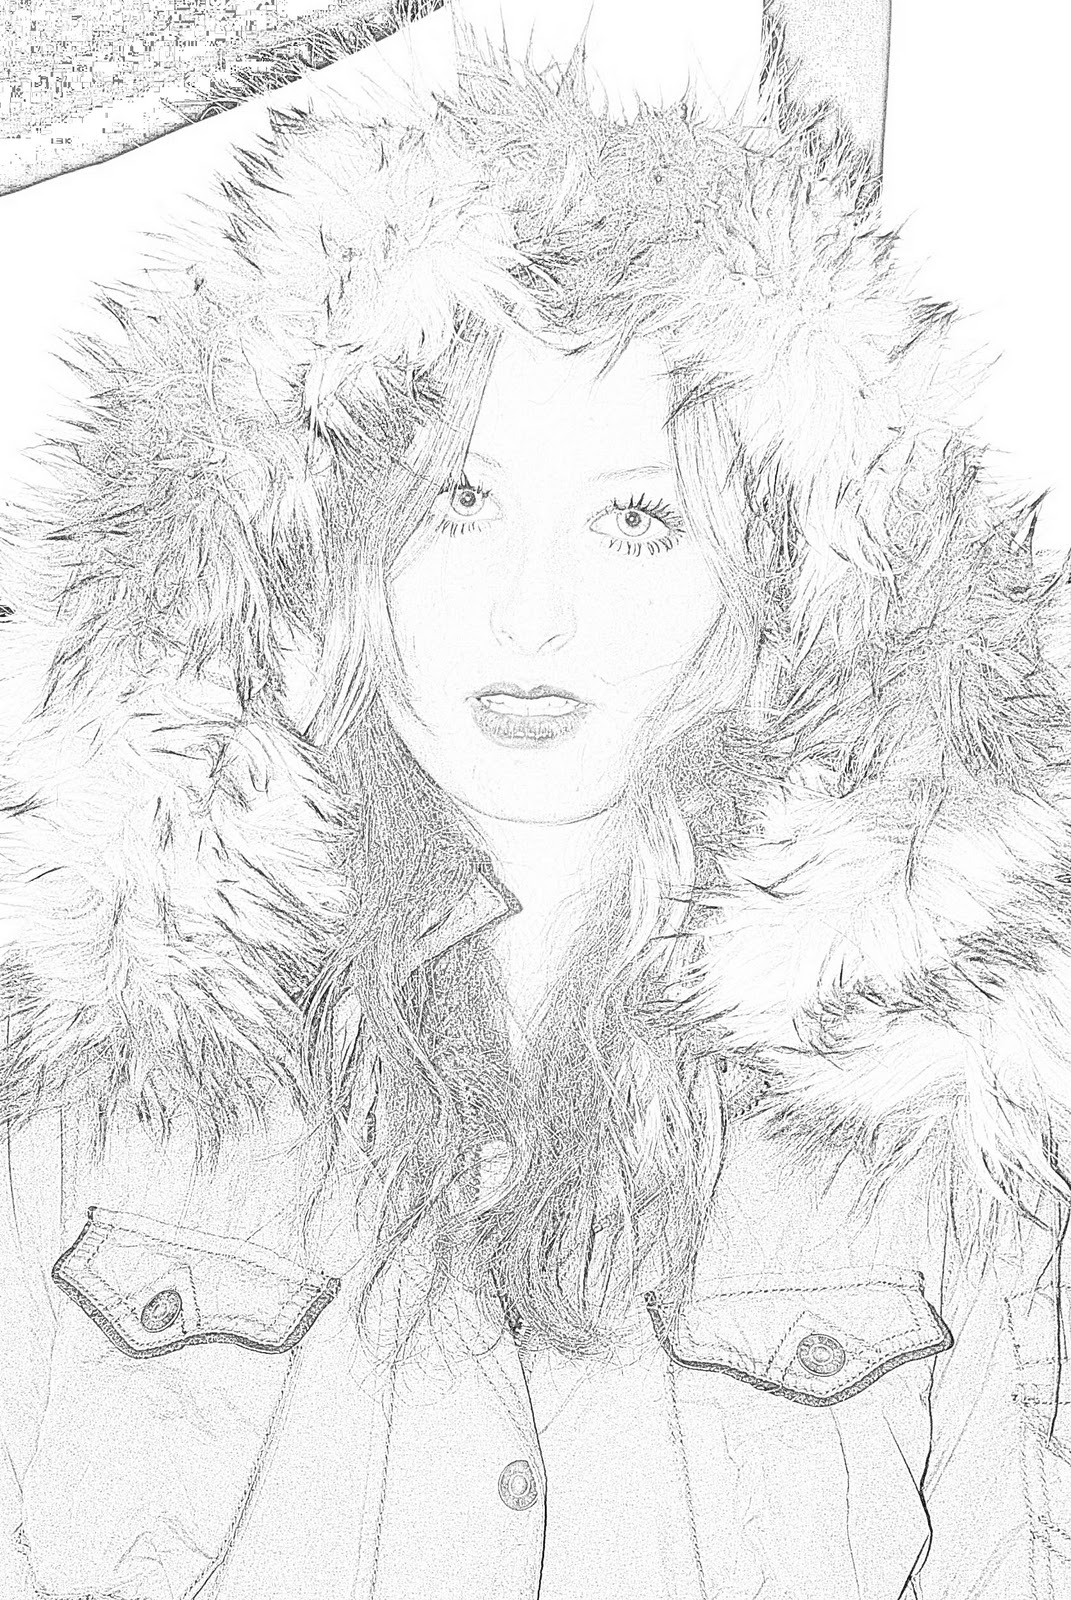 Photoshop Photo Line Art Effect : Album art my line drawing